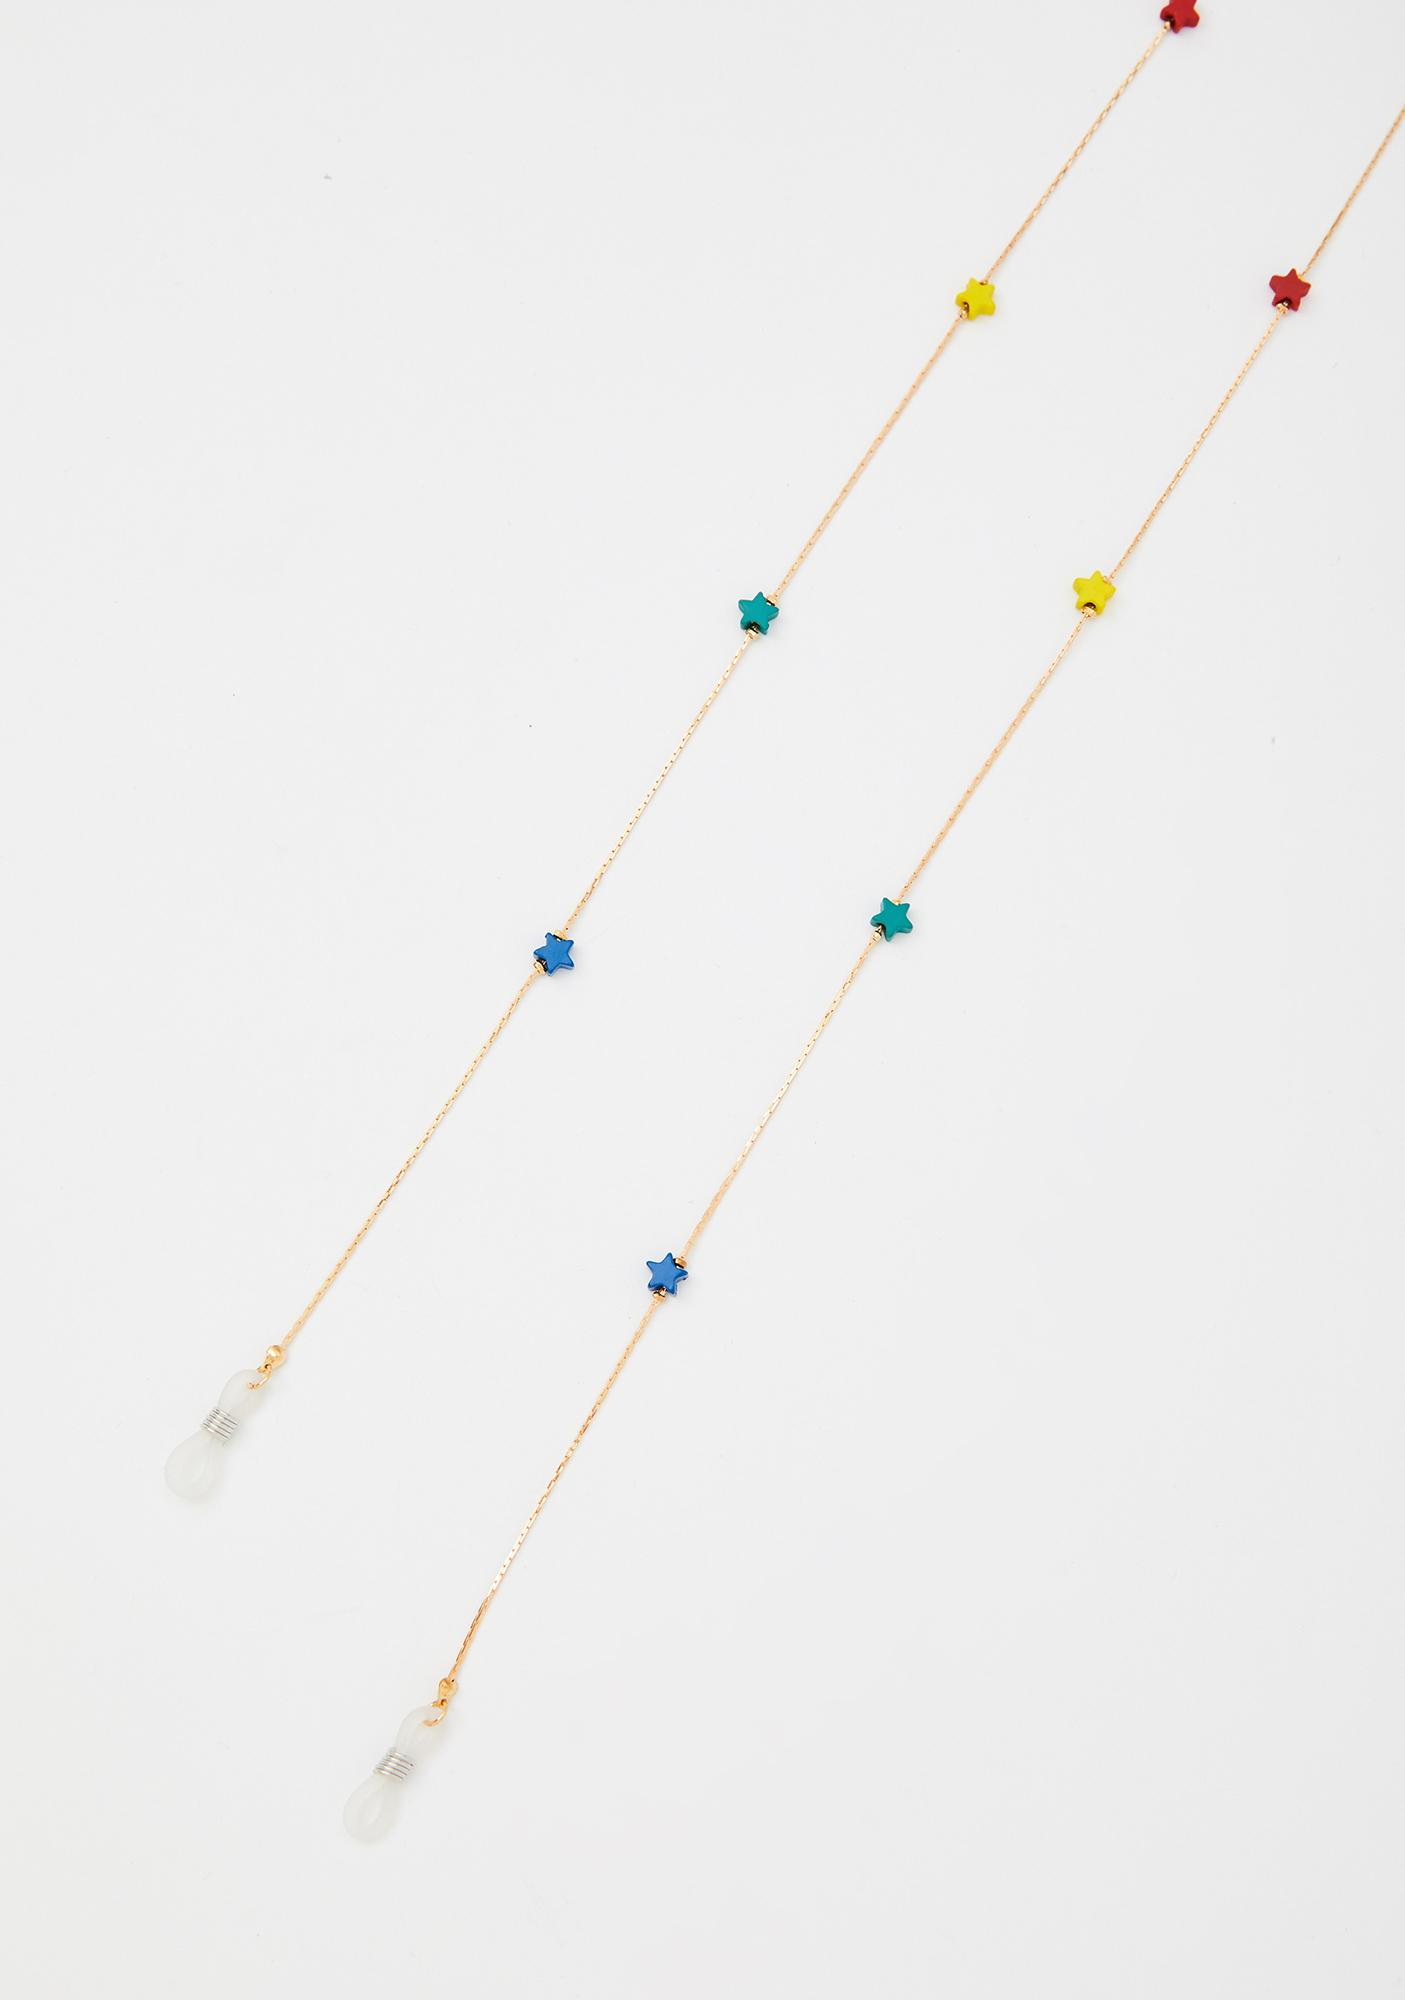 Starry Eyed Sunglasses Chain